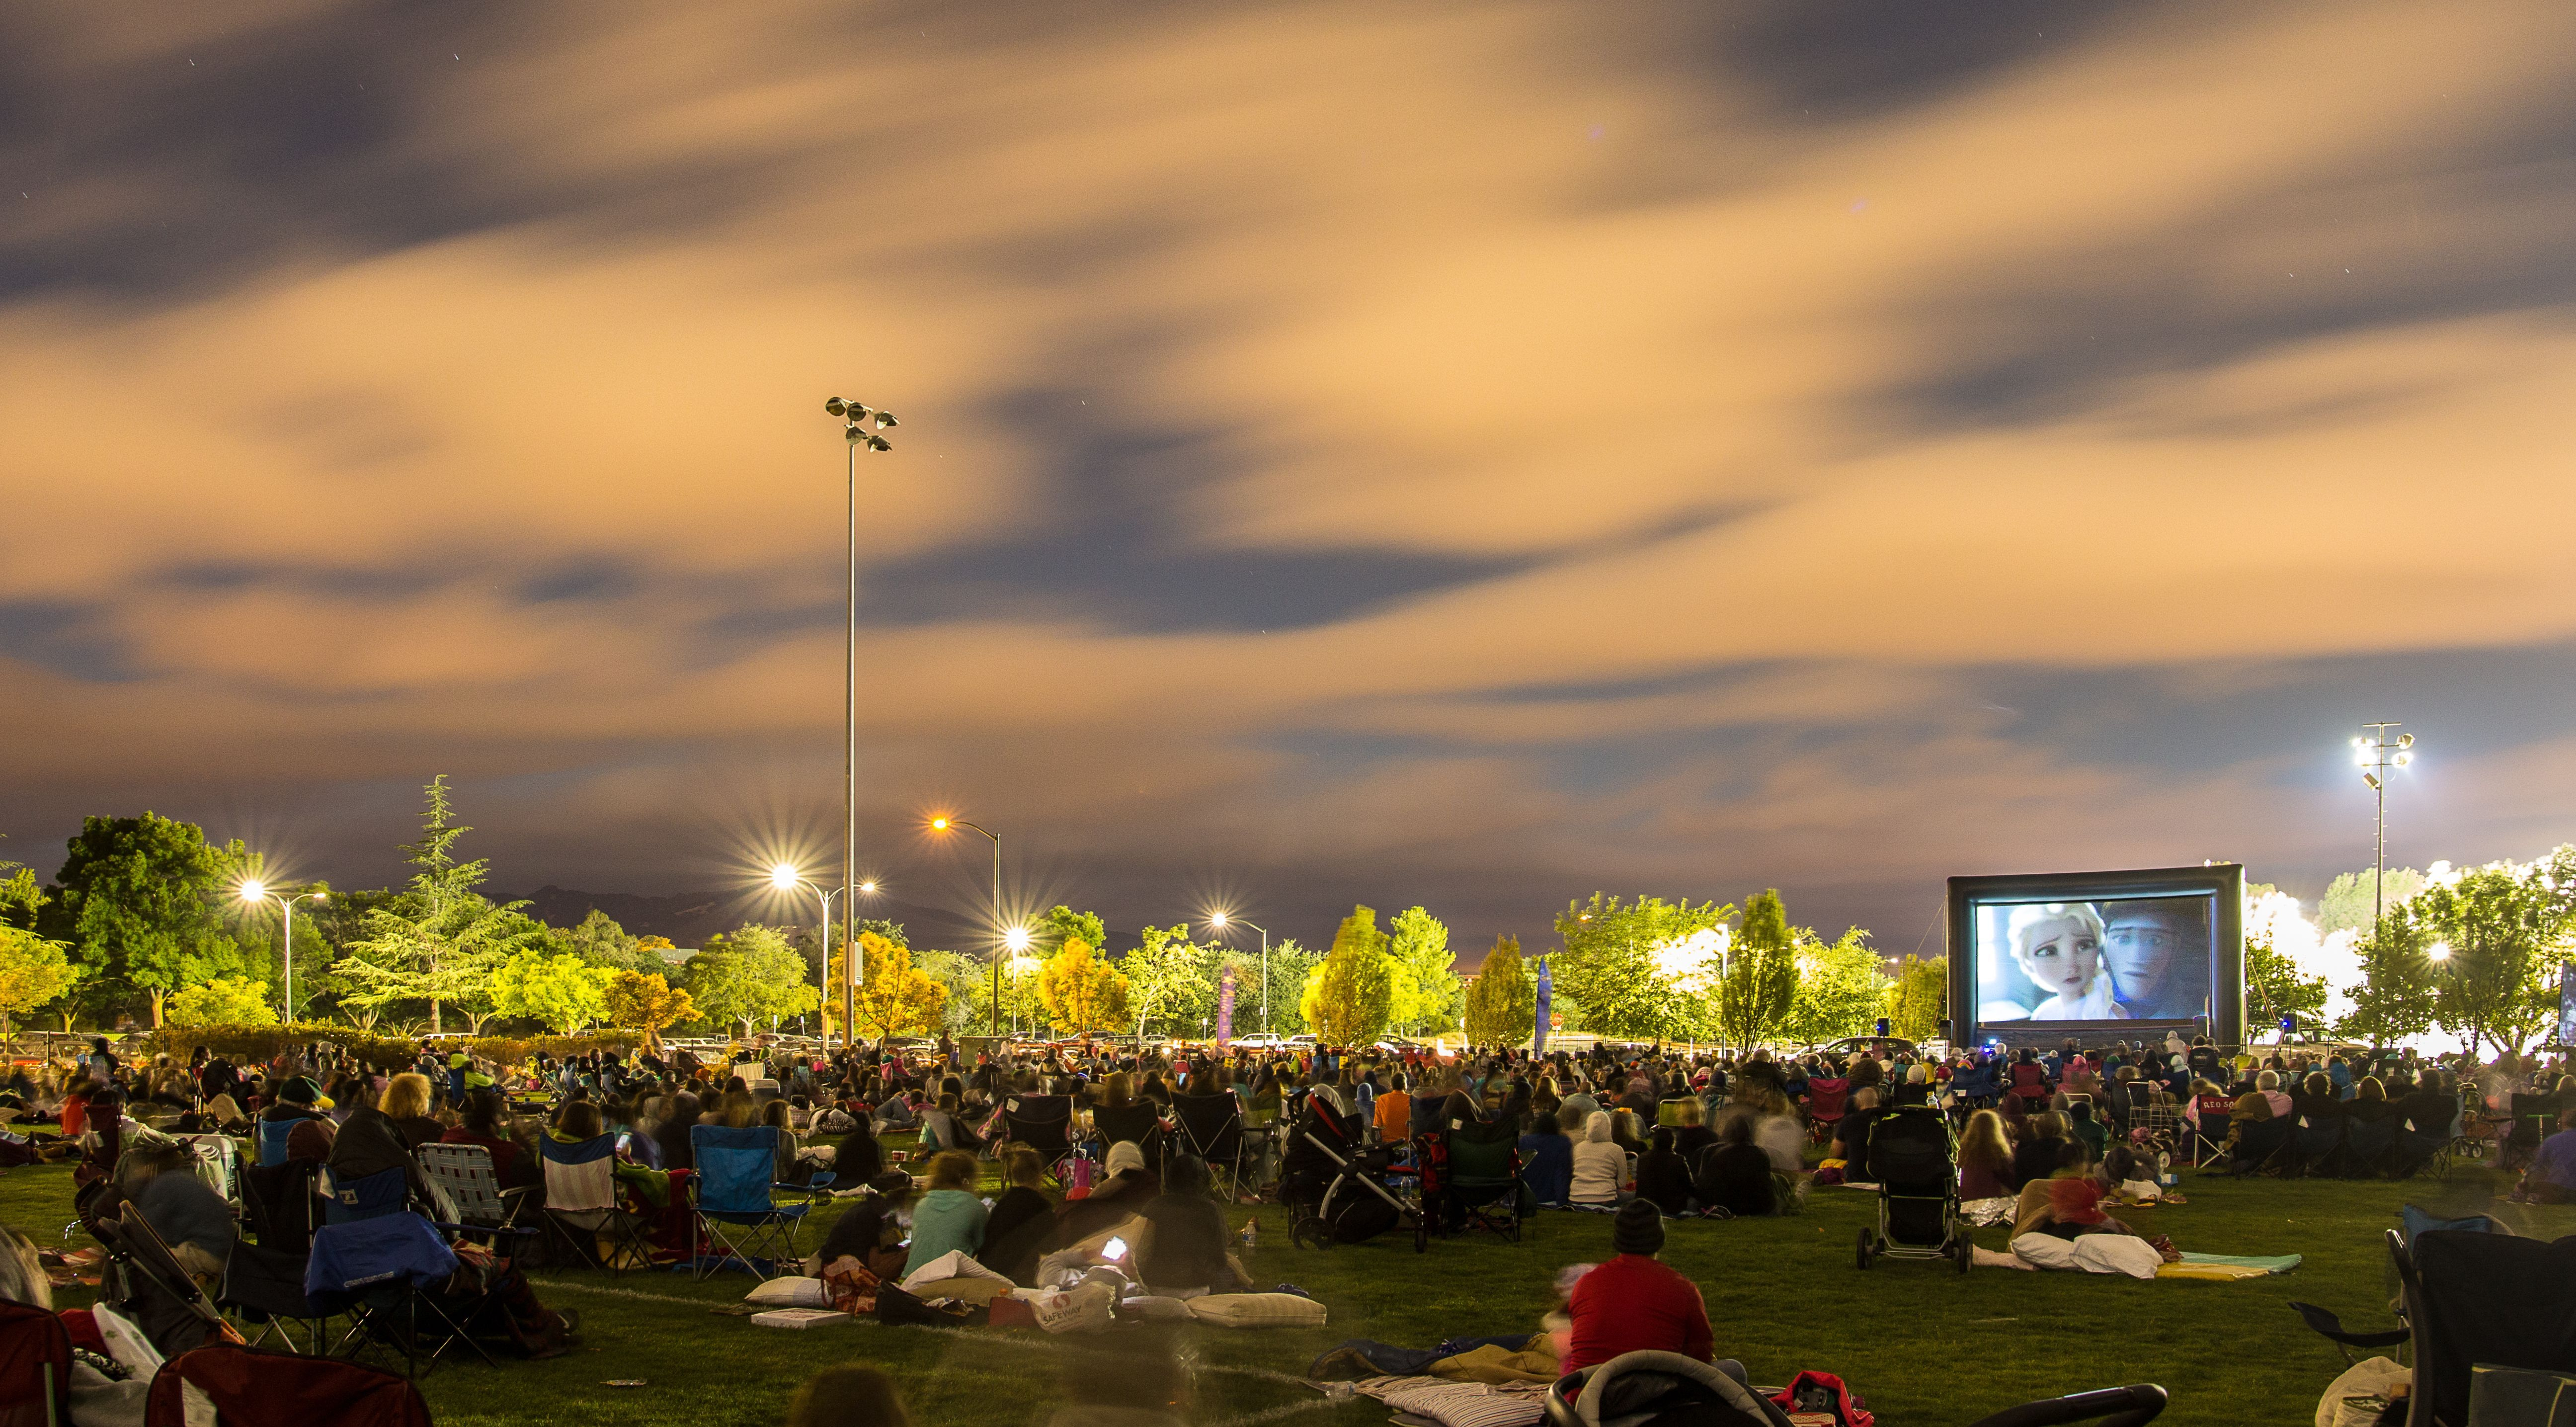 Carlsbad movie projection rentals for outdoor film screenings by FunFlicks, CA